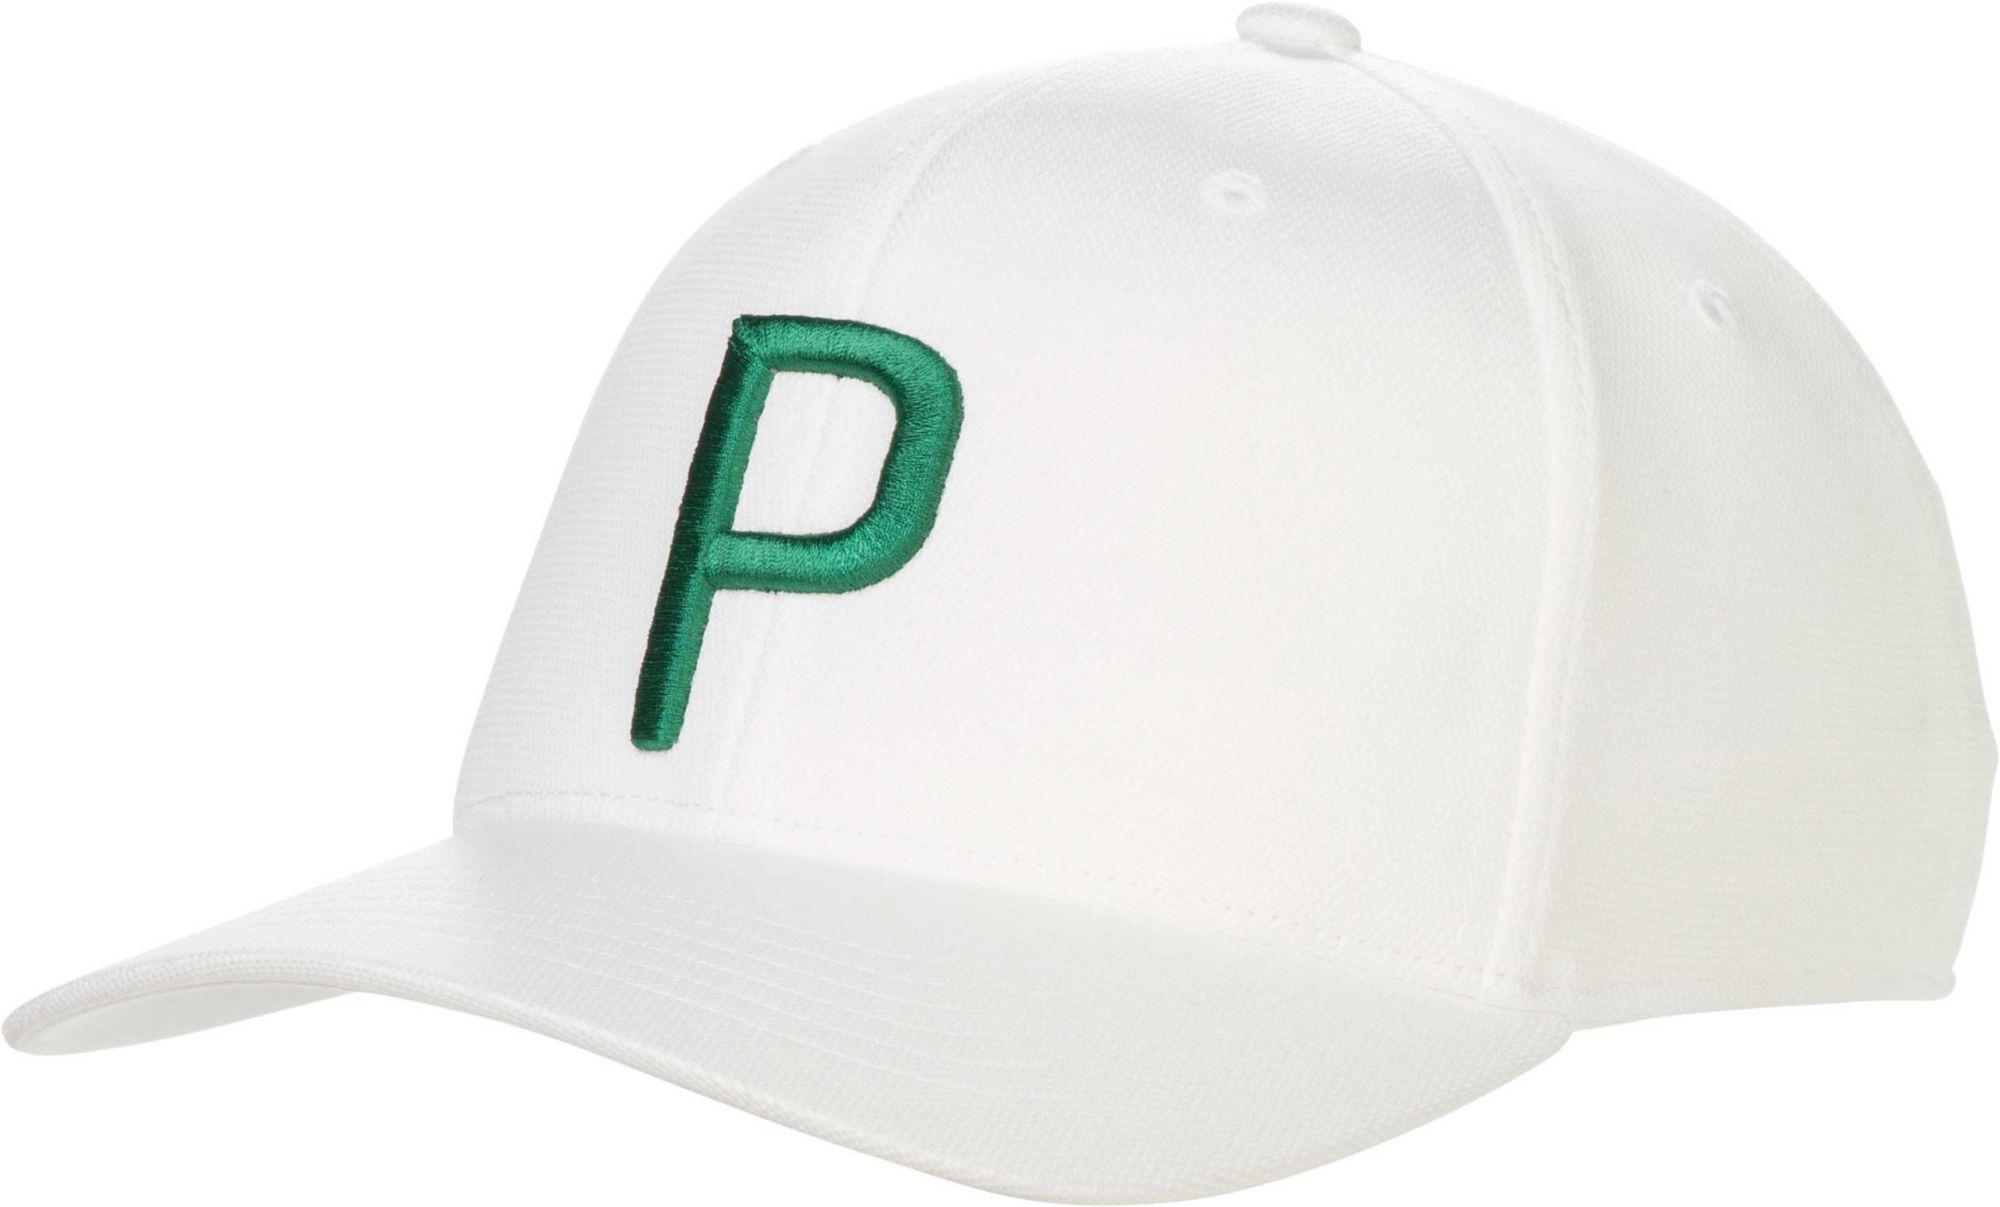 0662a232426b Lyst - PUMA P 110 Recyclable Snapback Golf Hat in White for Men